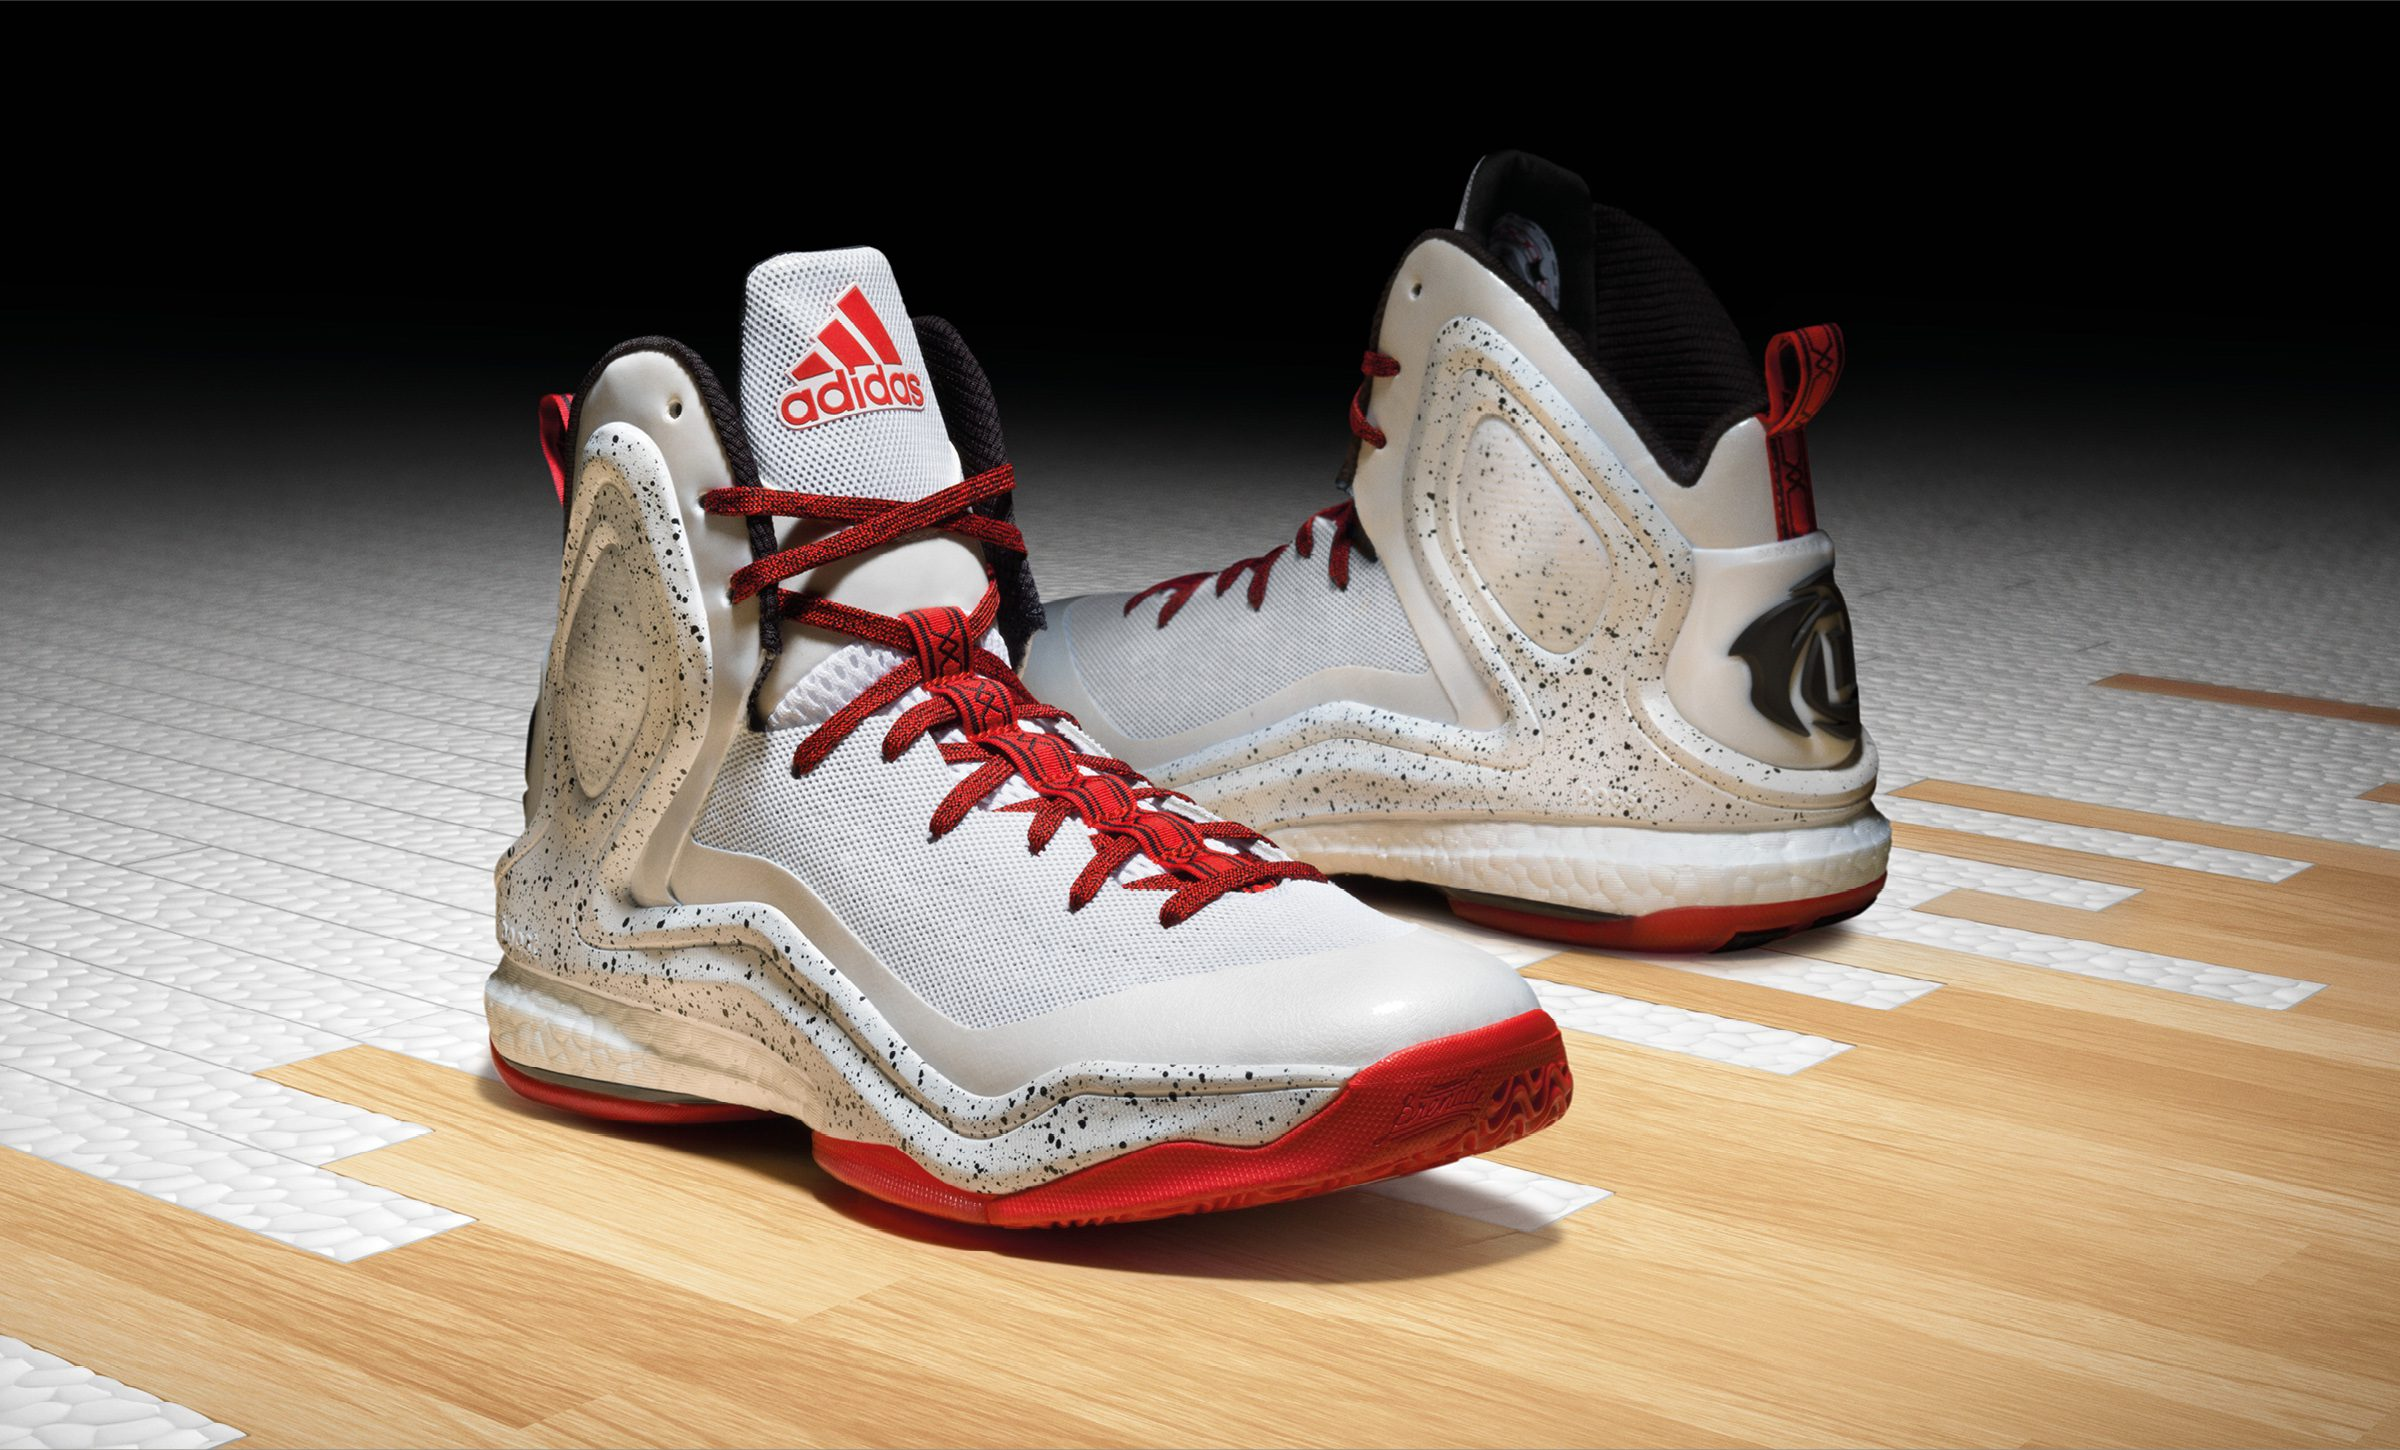 mens adidas d rose 5 boost basketball shoes